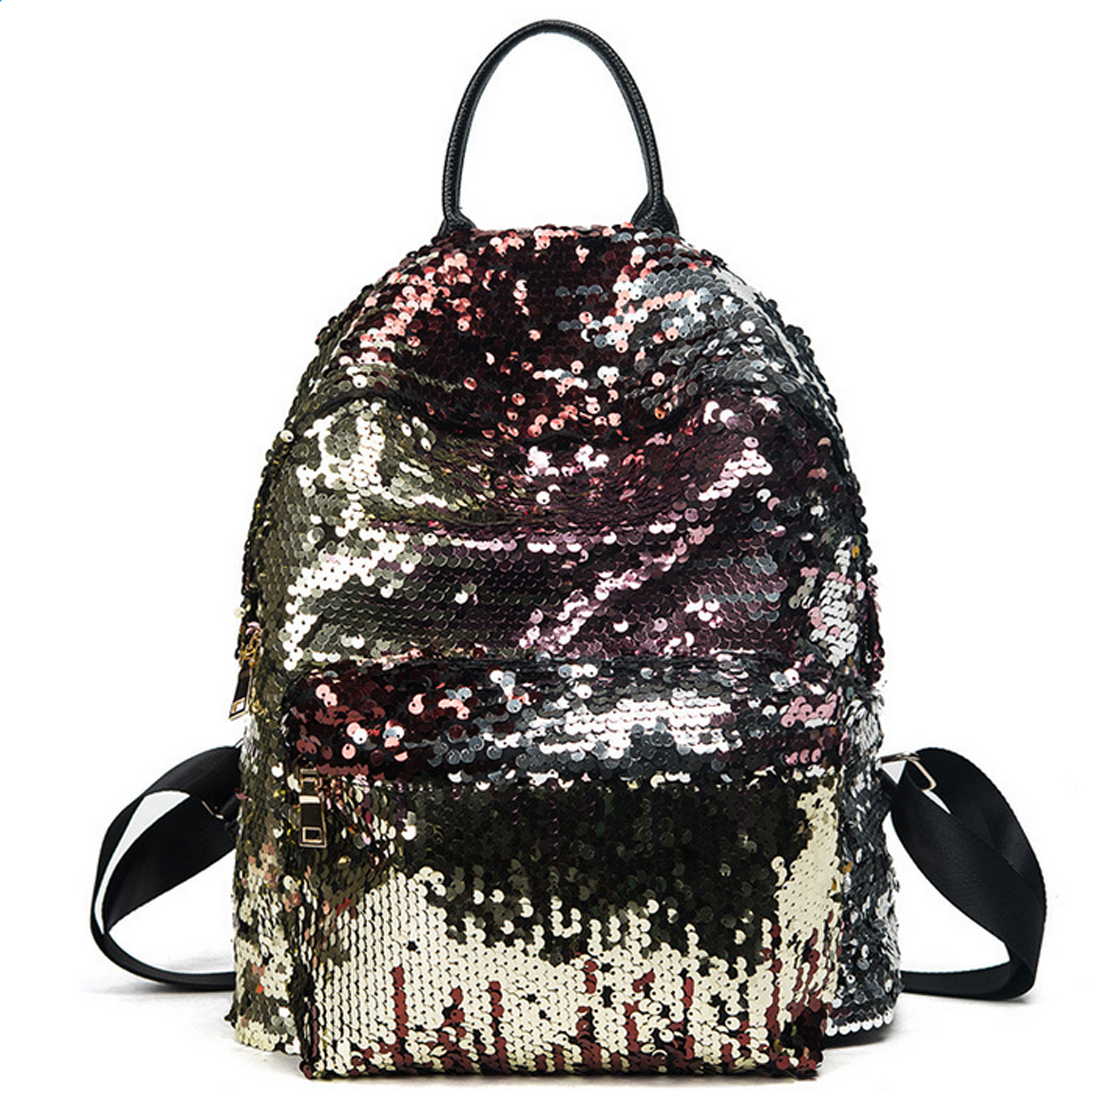 Sfg house fashion girls sequins backpack 2017 women travel shoulder bags casual unique backpacks Korean style fashion girl bag